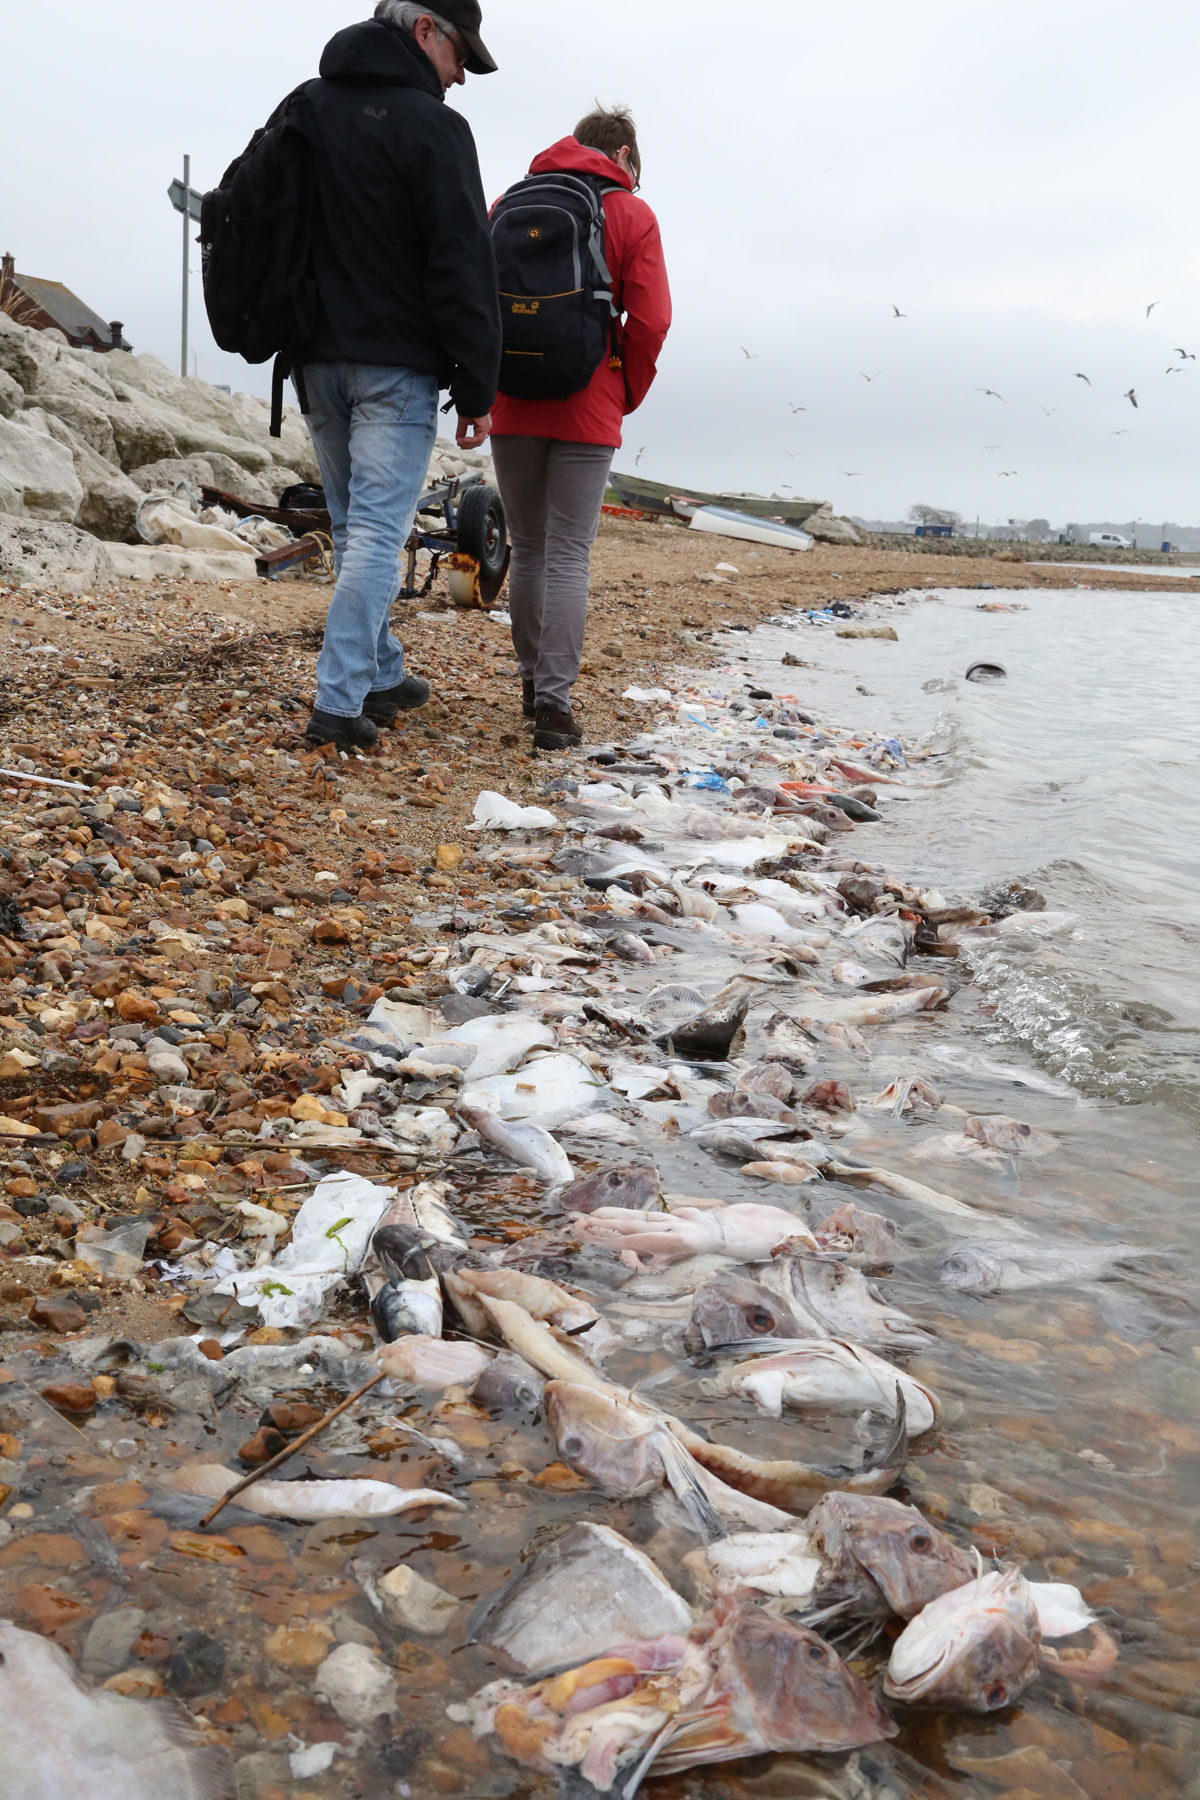 UPDATE WITH VIDEO: Hundreds of dead fish found washed up at Baiter in Poole